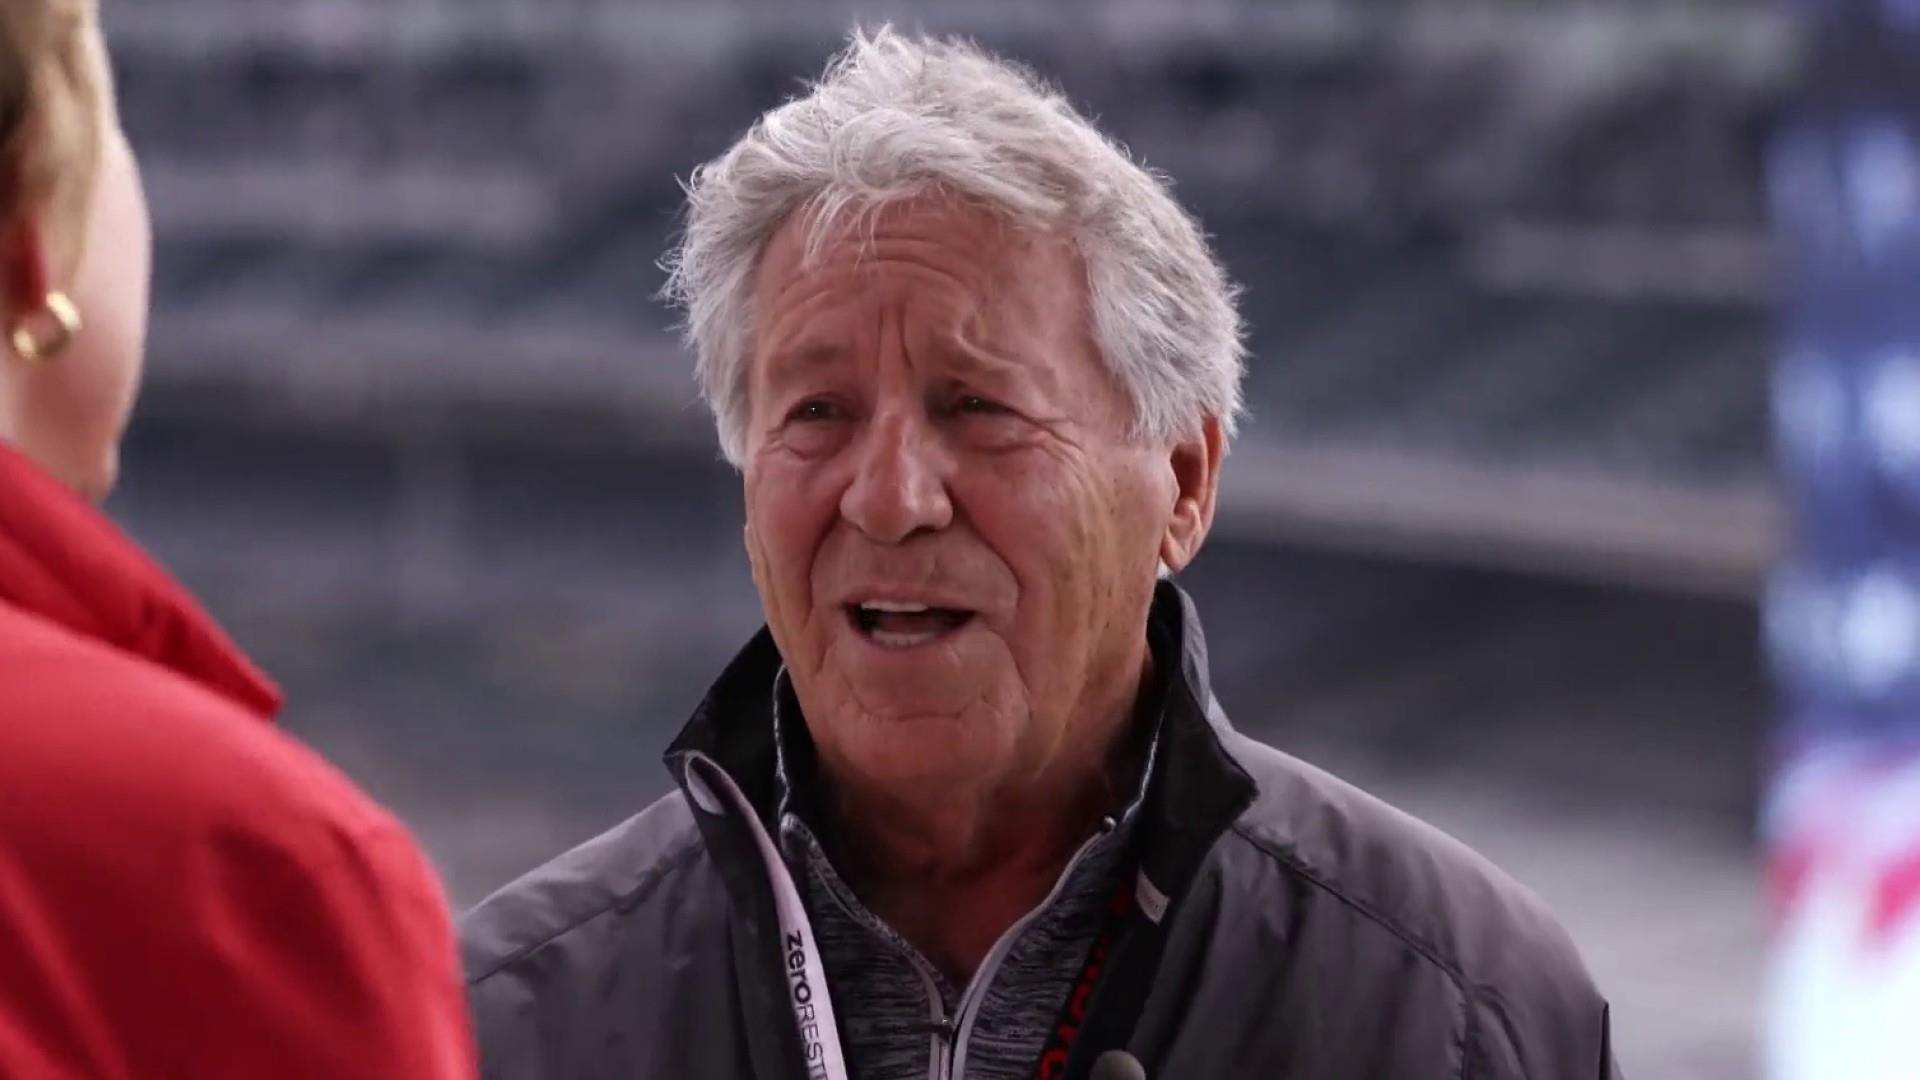 Behind the wheel with Mario Andretti 50 years after his Indy 500 win